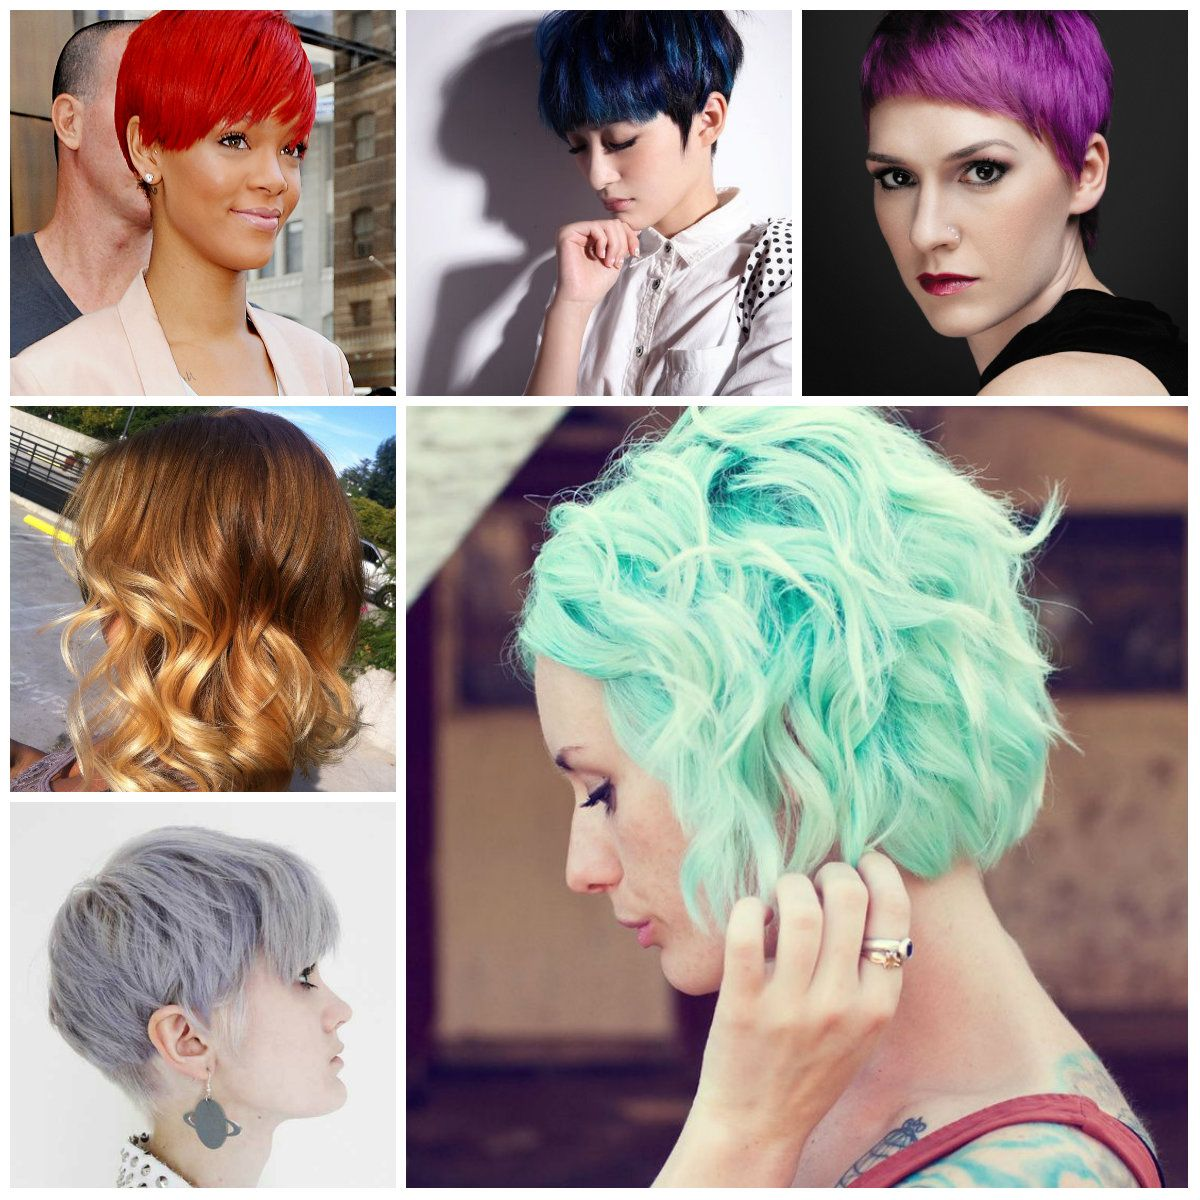 Brown hair color hair colors 2017 trends and ideas for your hair - Hair Color Ideas For Short Hair 2016 Hair Color Trends 2016